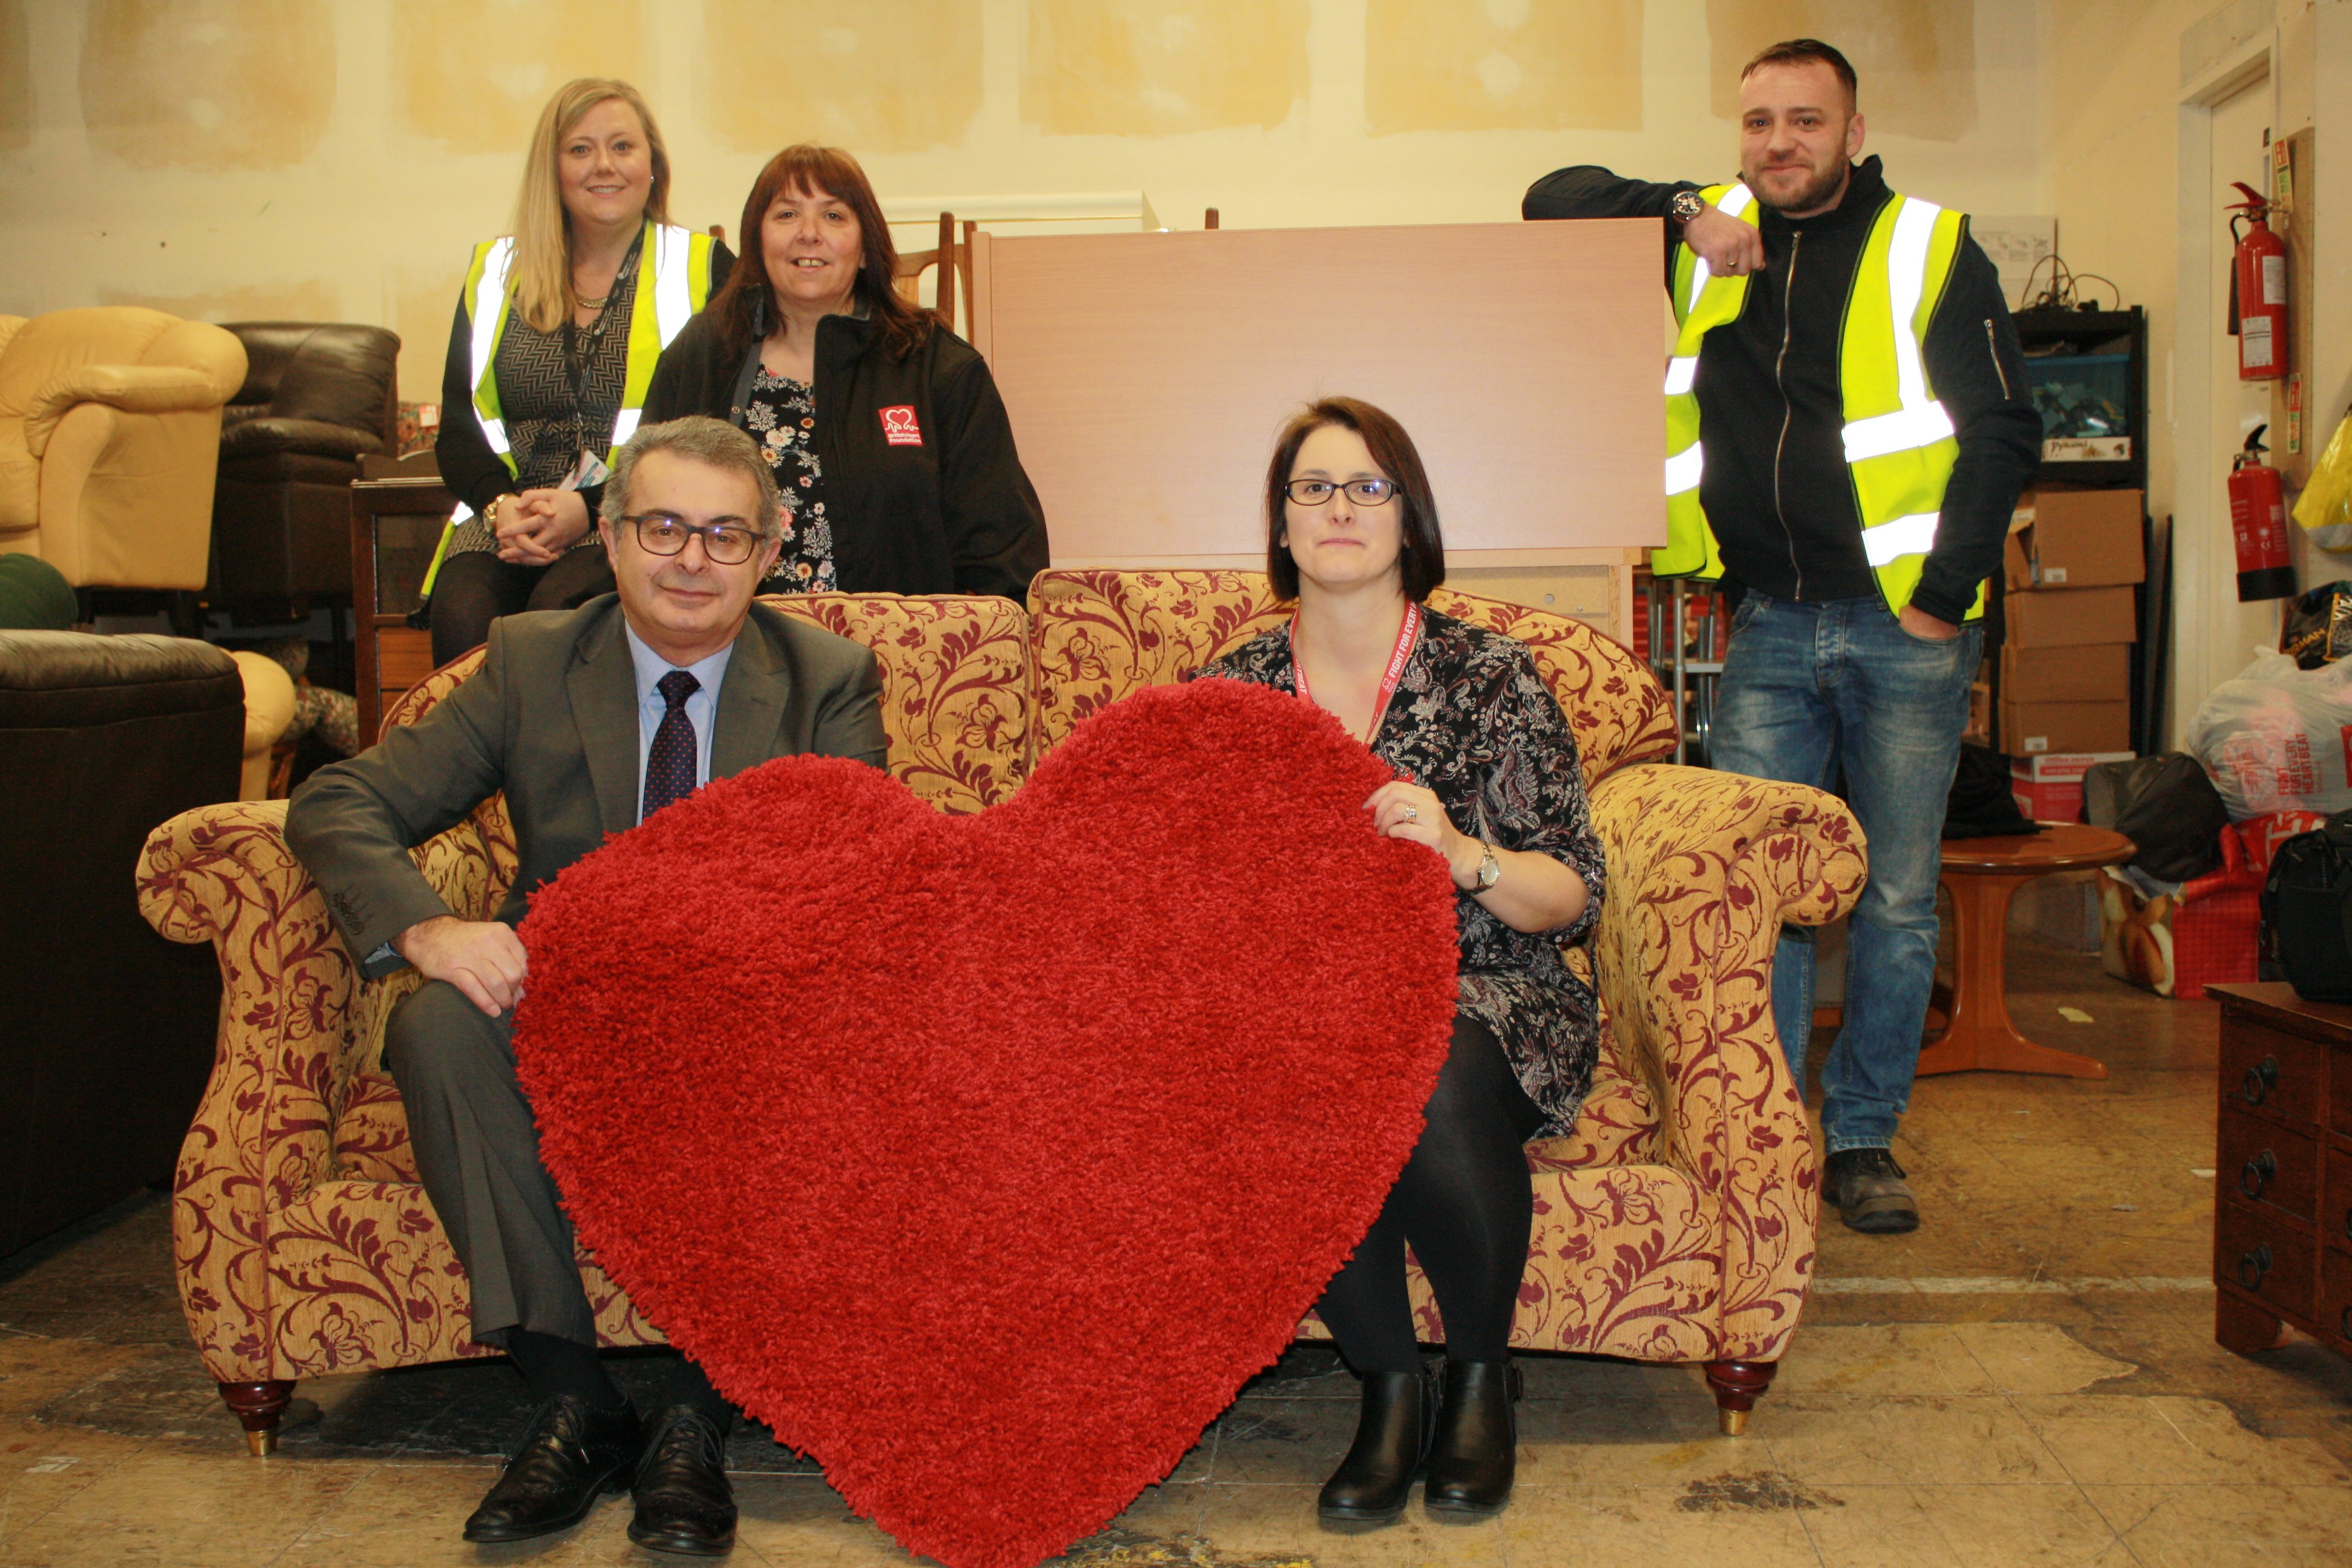 BHF Representatives and Cardiff Council in the Cardiff BHF Furniture & Electrical Store launching the Waste Reuse Partnership with a heart rug